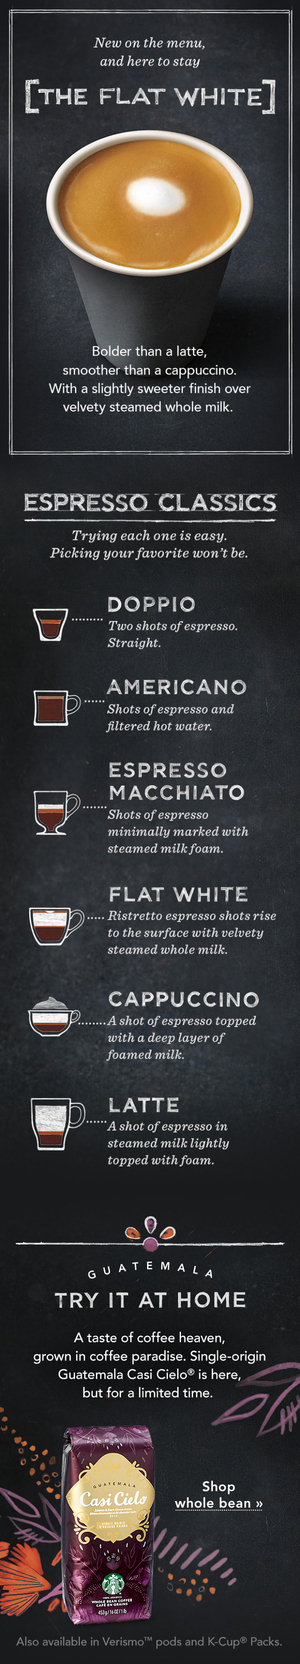 Starbucks The Flat White Espresso Email Infographic